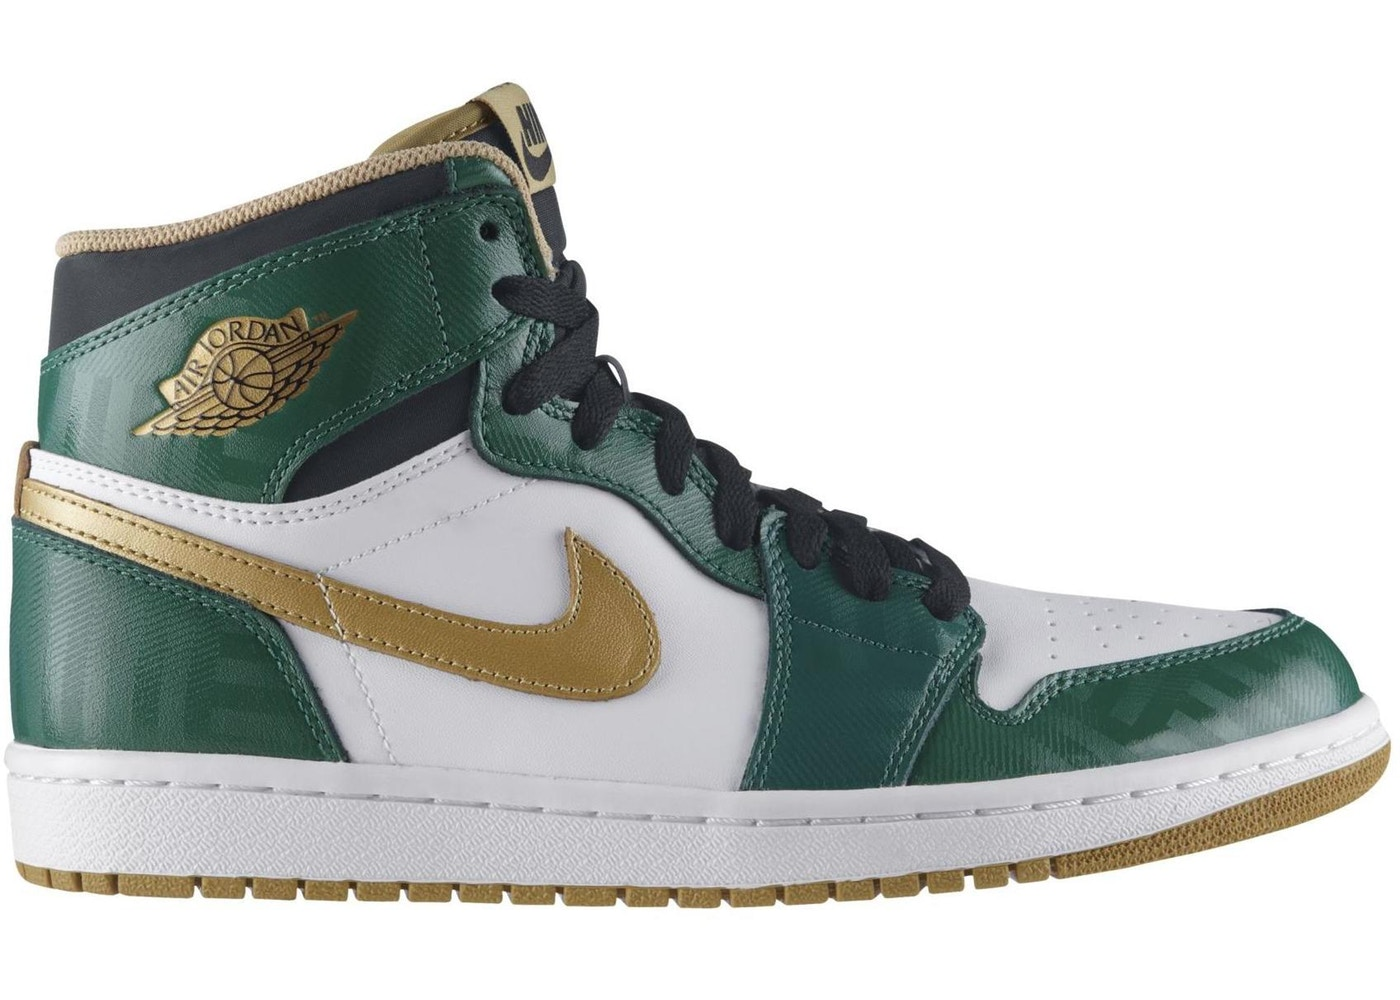 ナイキ ジョーダン JORDAN スニーカー 【 1 OG CELTICS CLOVER METALLIC GOLD WHITE BLACK 】 メンズ